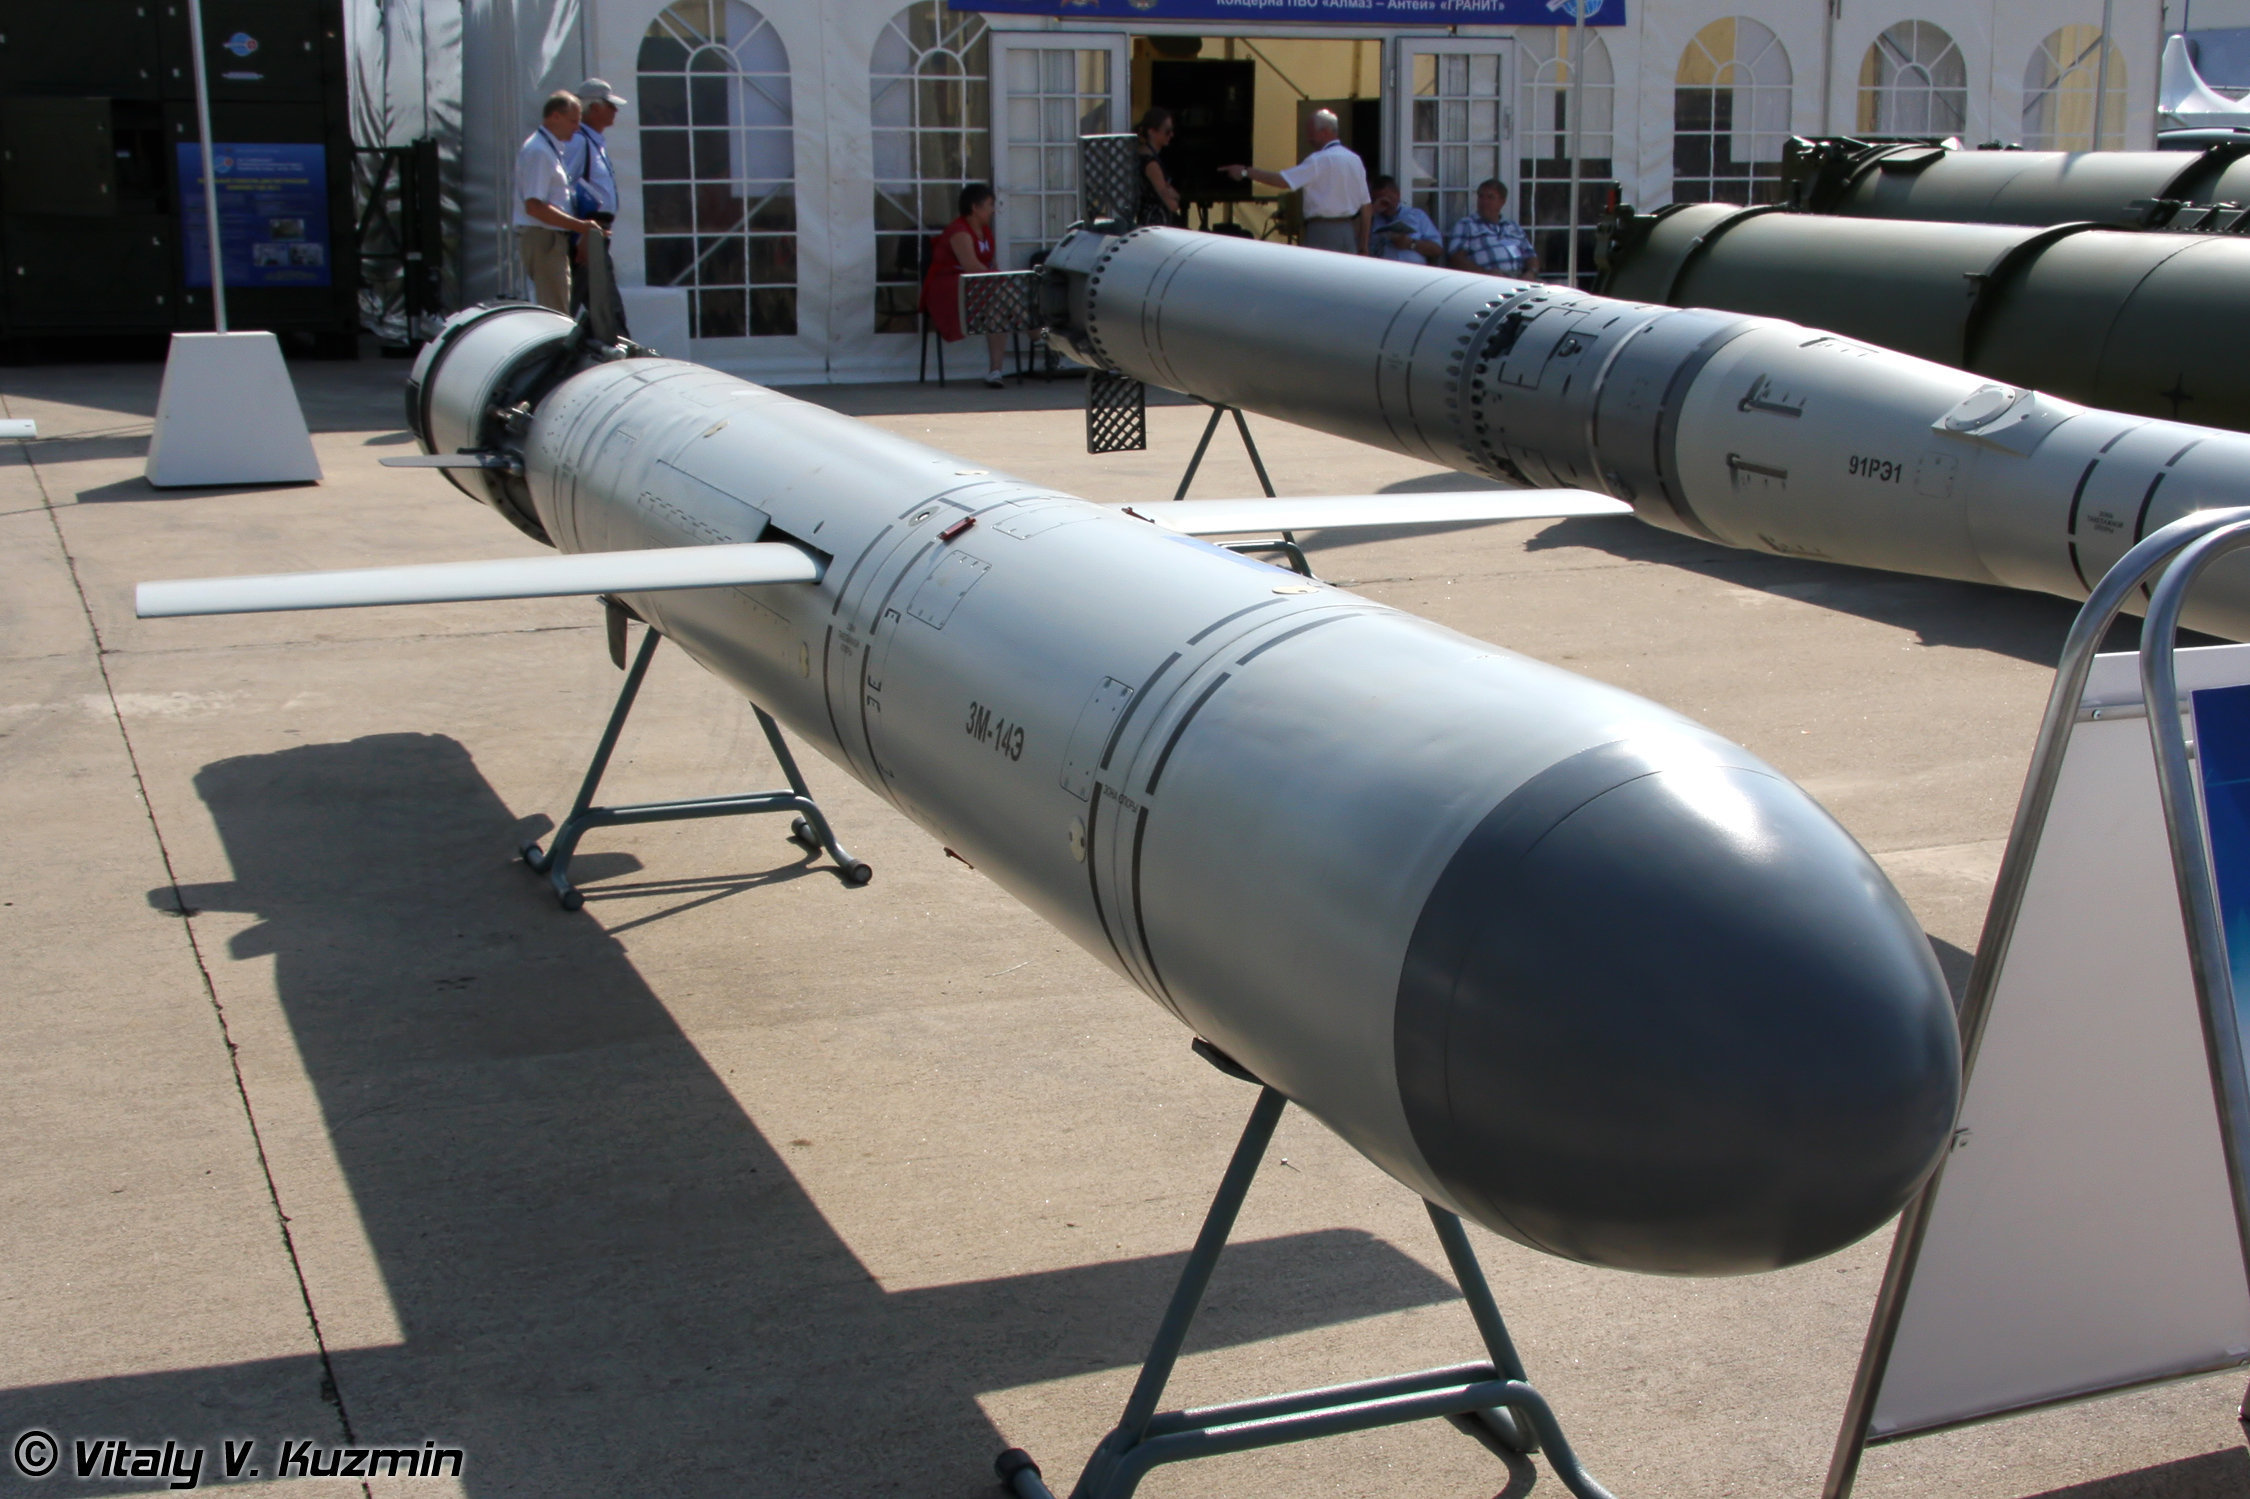 The Kalibr land attack cruise missile